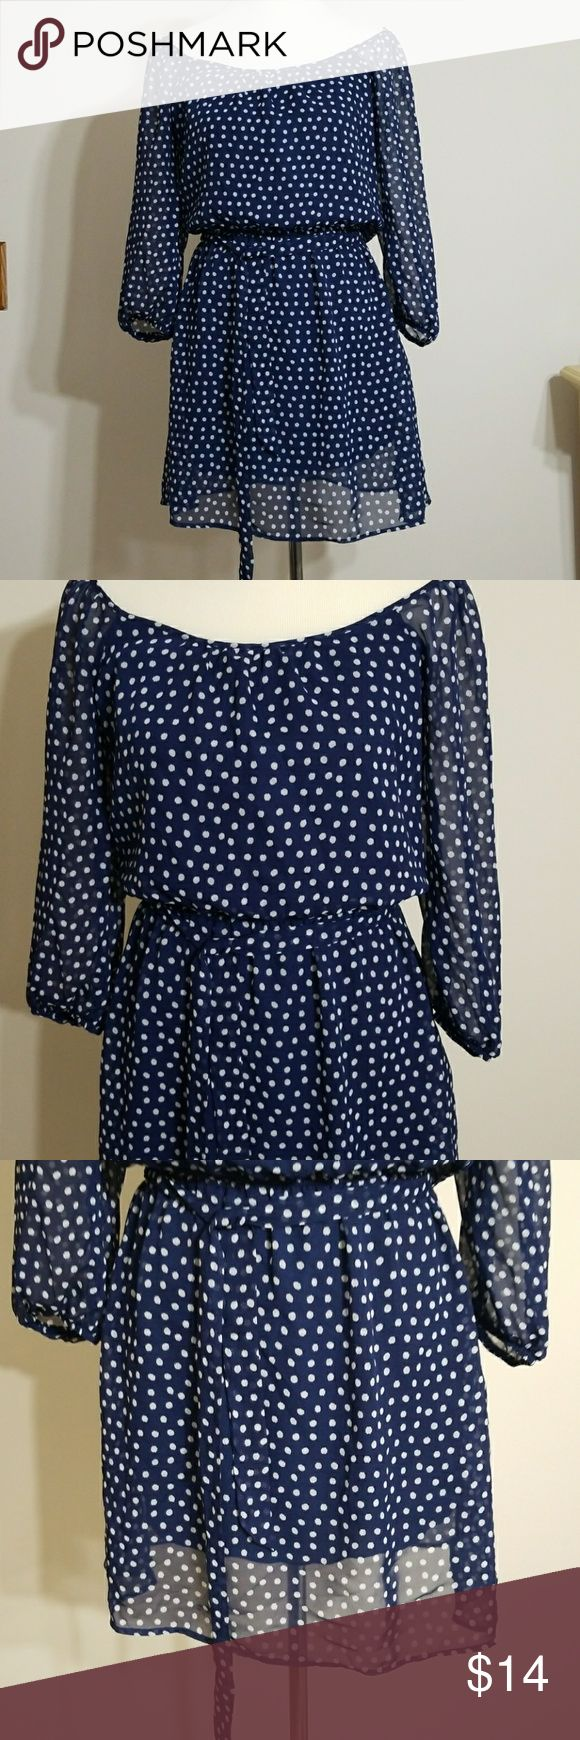 """Speechless Polka Dot Mini Dress Speechless Polka Dots Mini Dress with elastic waist and sleeve size Small. Inspired by the 80s.  In very good pre-owned condition, no flaws noticed. 100%polyester  Mashine wash cold  Measurement  Armpit to the armpit:17"""" Waist:12"""" across  un-streched  Sleeve inseam:13"""" Length:35"""" Speechless Dresses Mini"""